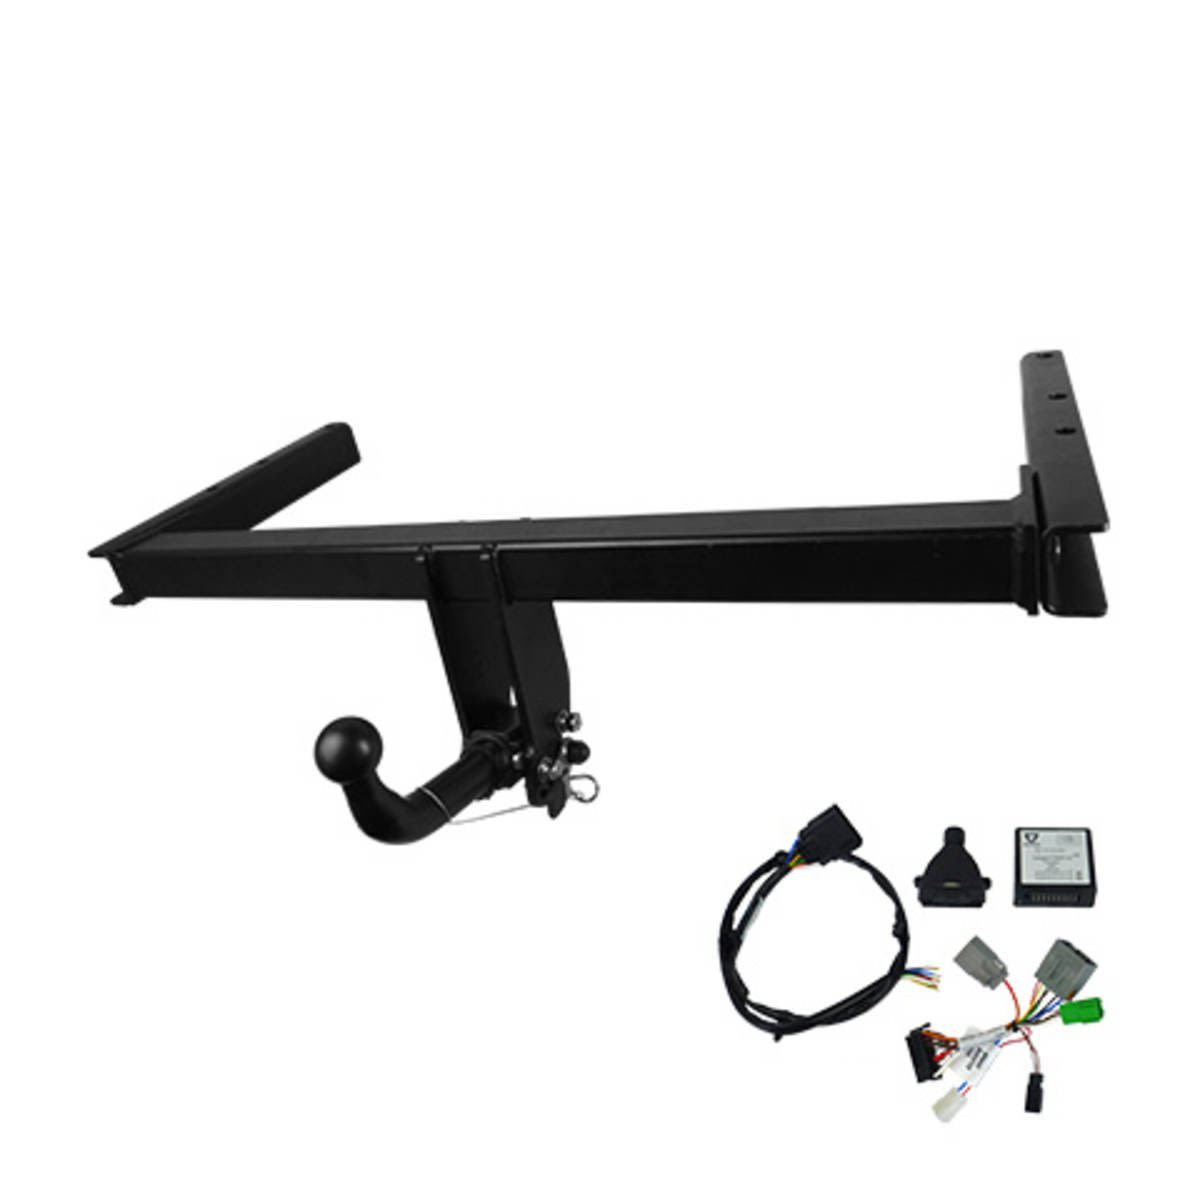 TAG Towbars European Style Tongue to suit Renault Megane (07/2014 - on)